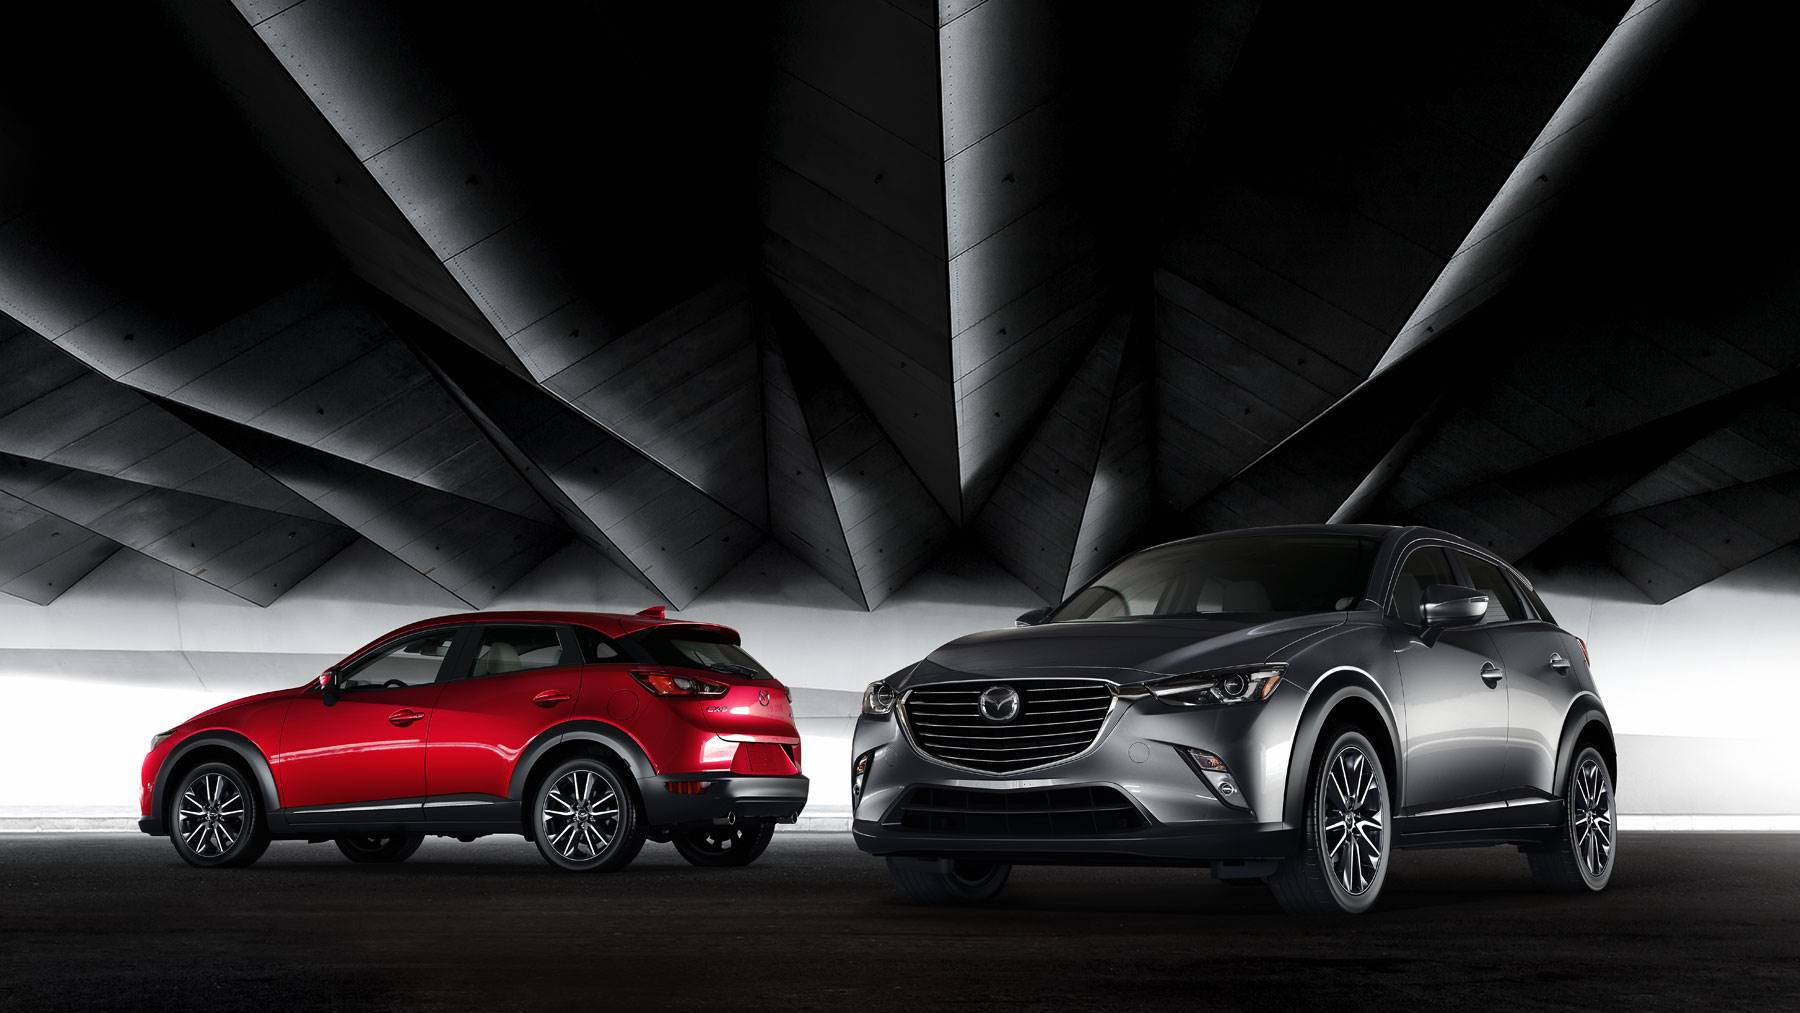 2018 Mazda CX-3 for Sale near San Antonio, TX